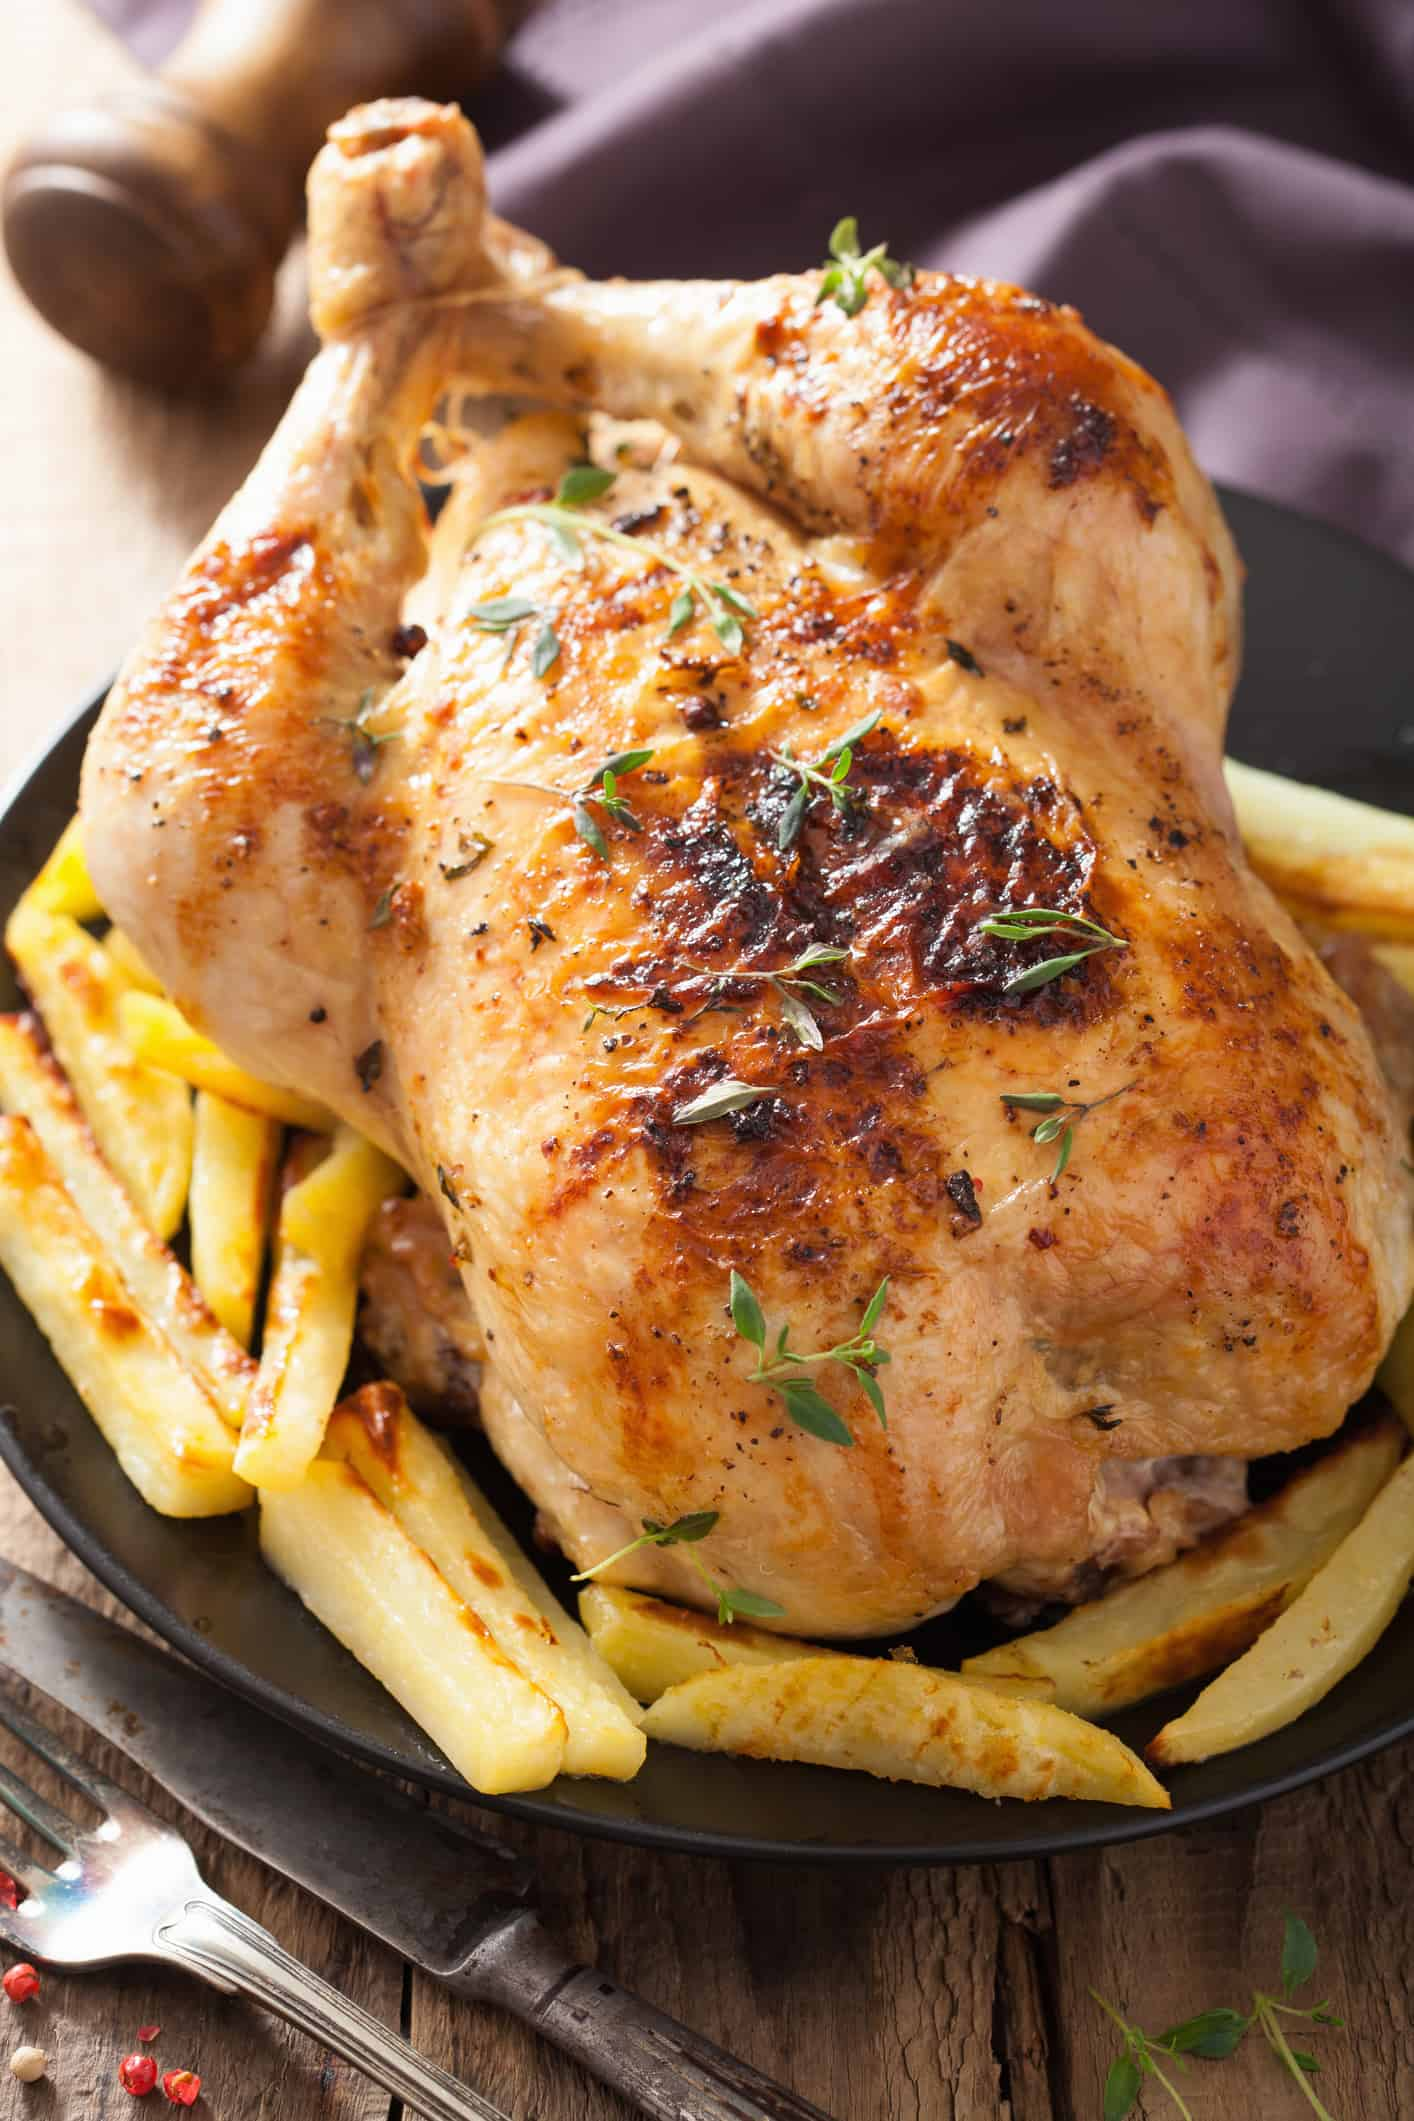 Whole roasted chicken. Simple and delicious!